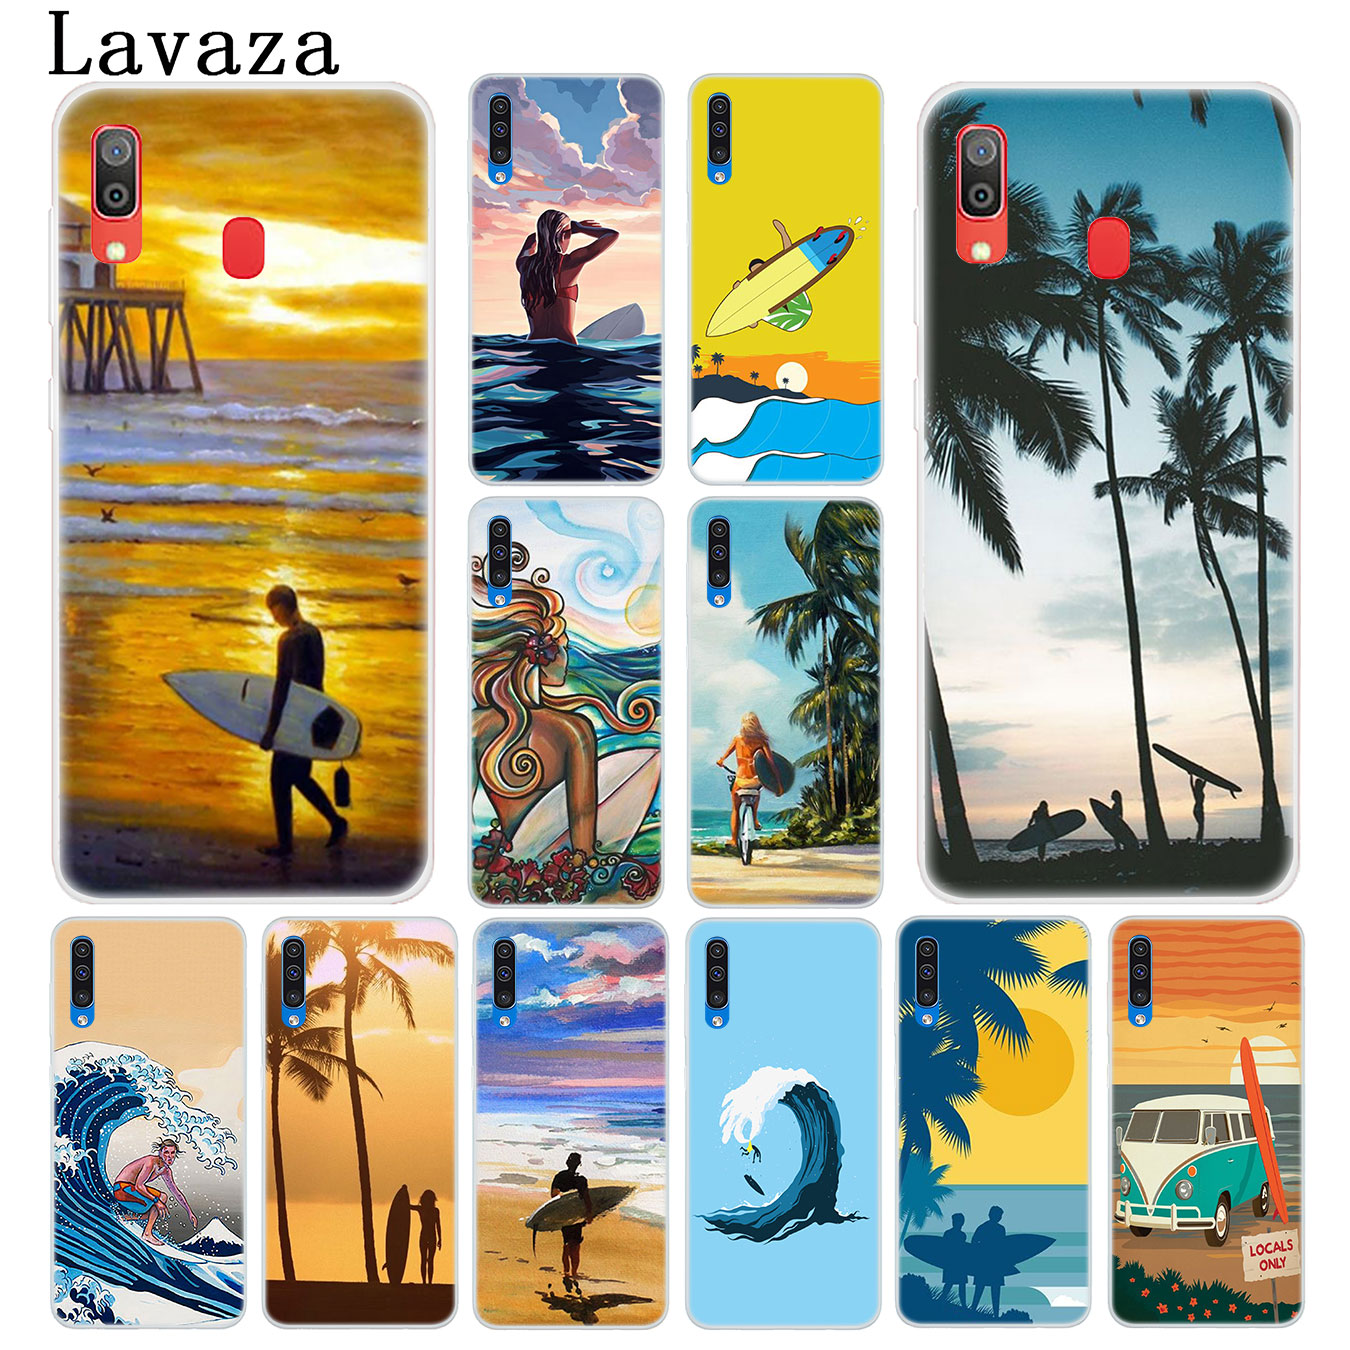 Lavaza surfboard surfing art surf Girl Hard Phone Case for Samsung Galaxy A10 A20 A30 A40 A50 A60 A70 M40 M30 M20 M10 A20e Cover image